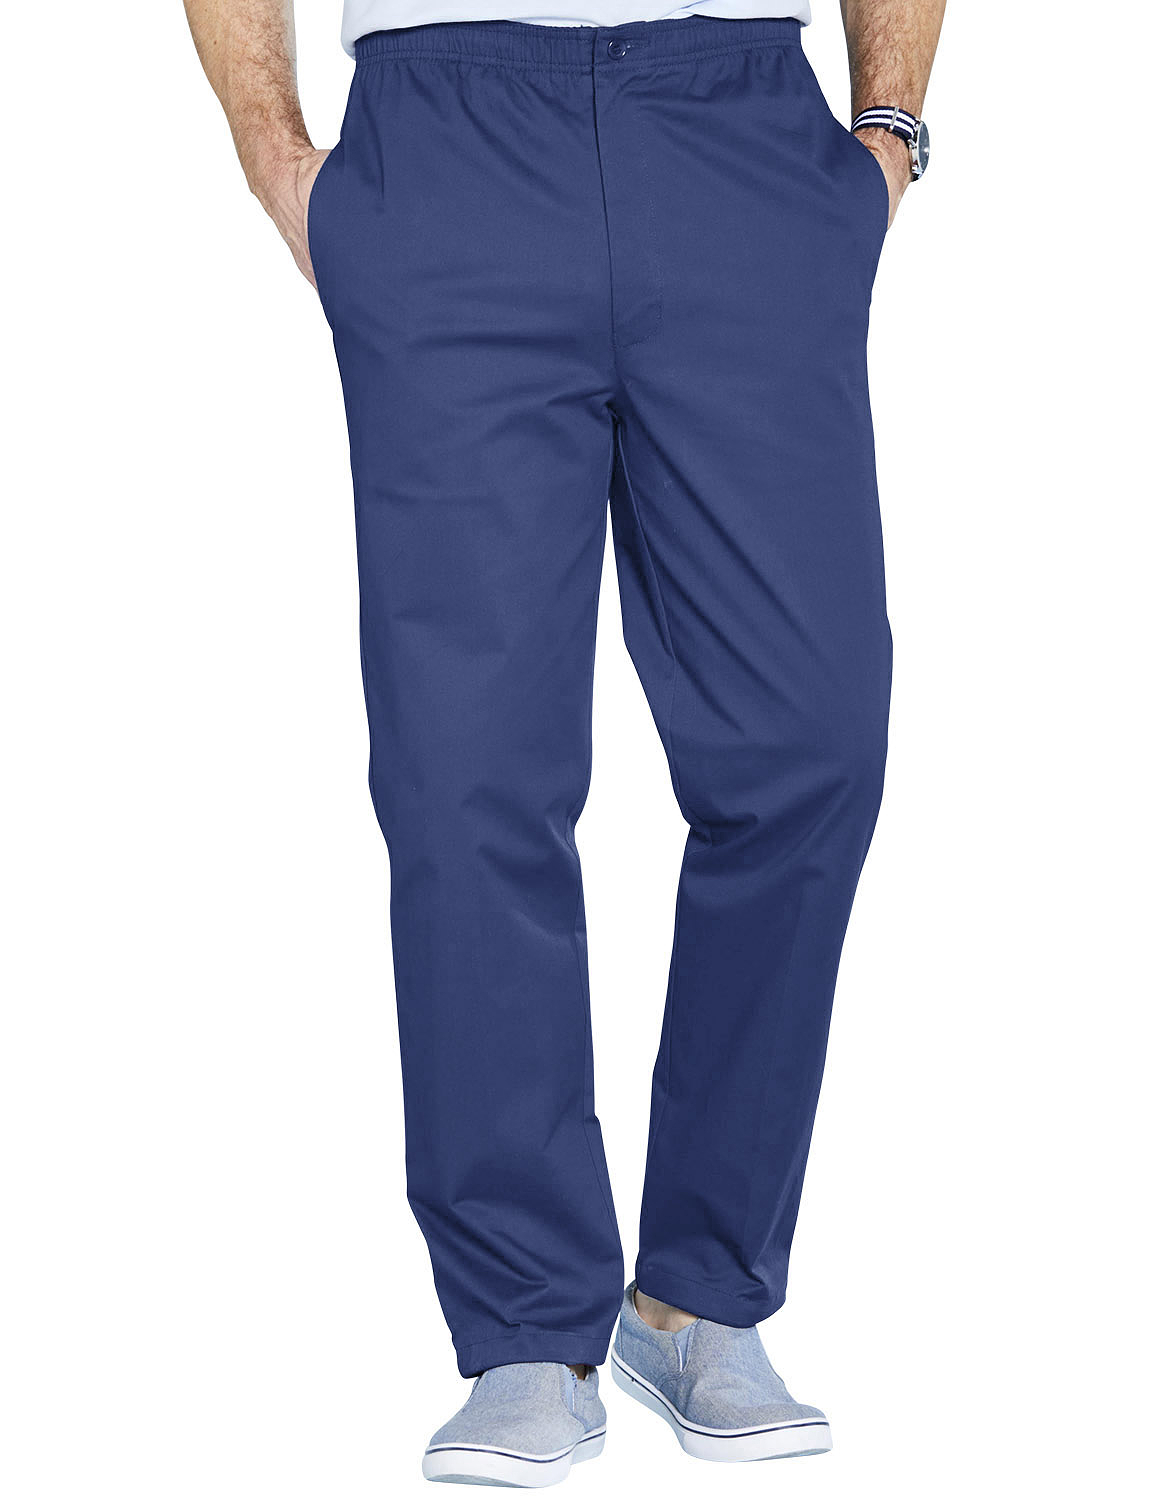 7d97a0c727e Mens Chums High Rise Pull on Trouser 46 29 MX029NAV4629 Navy. About this  product. Picture 1 of 4  Picture 2 of 4  Picture 3 of 4 ...